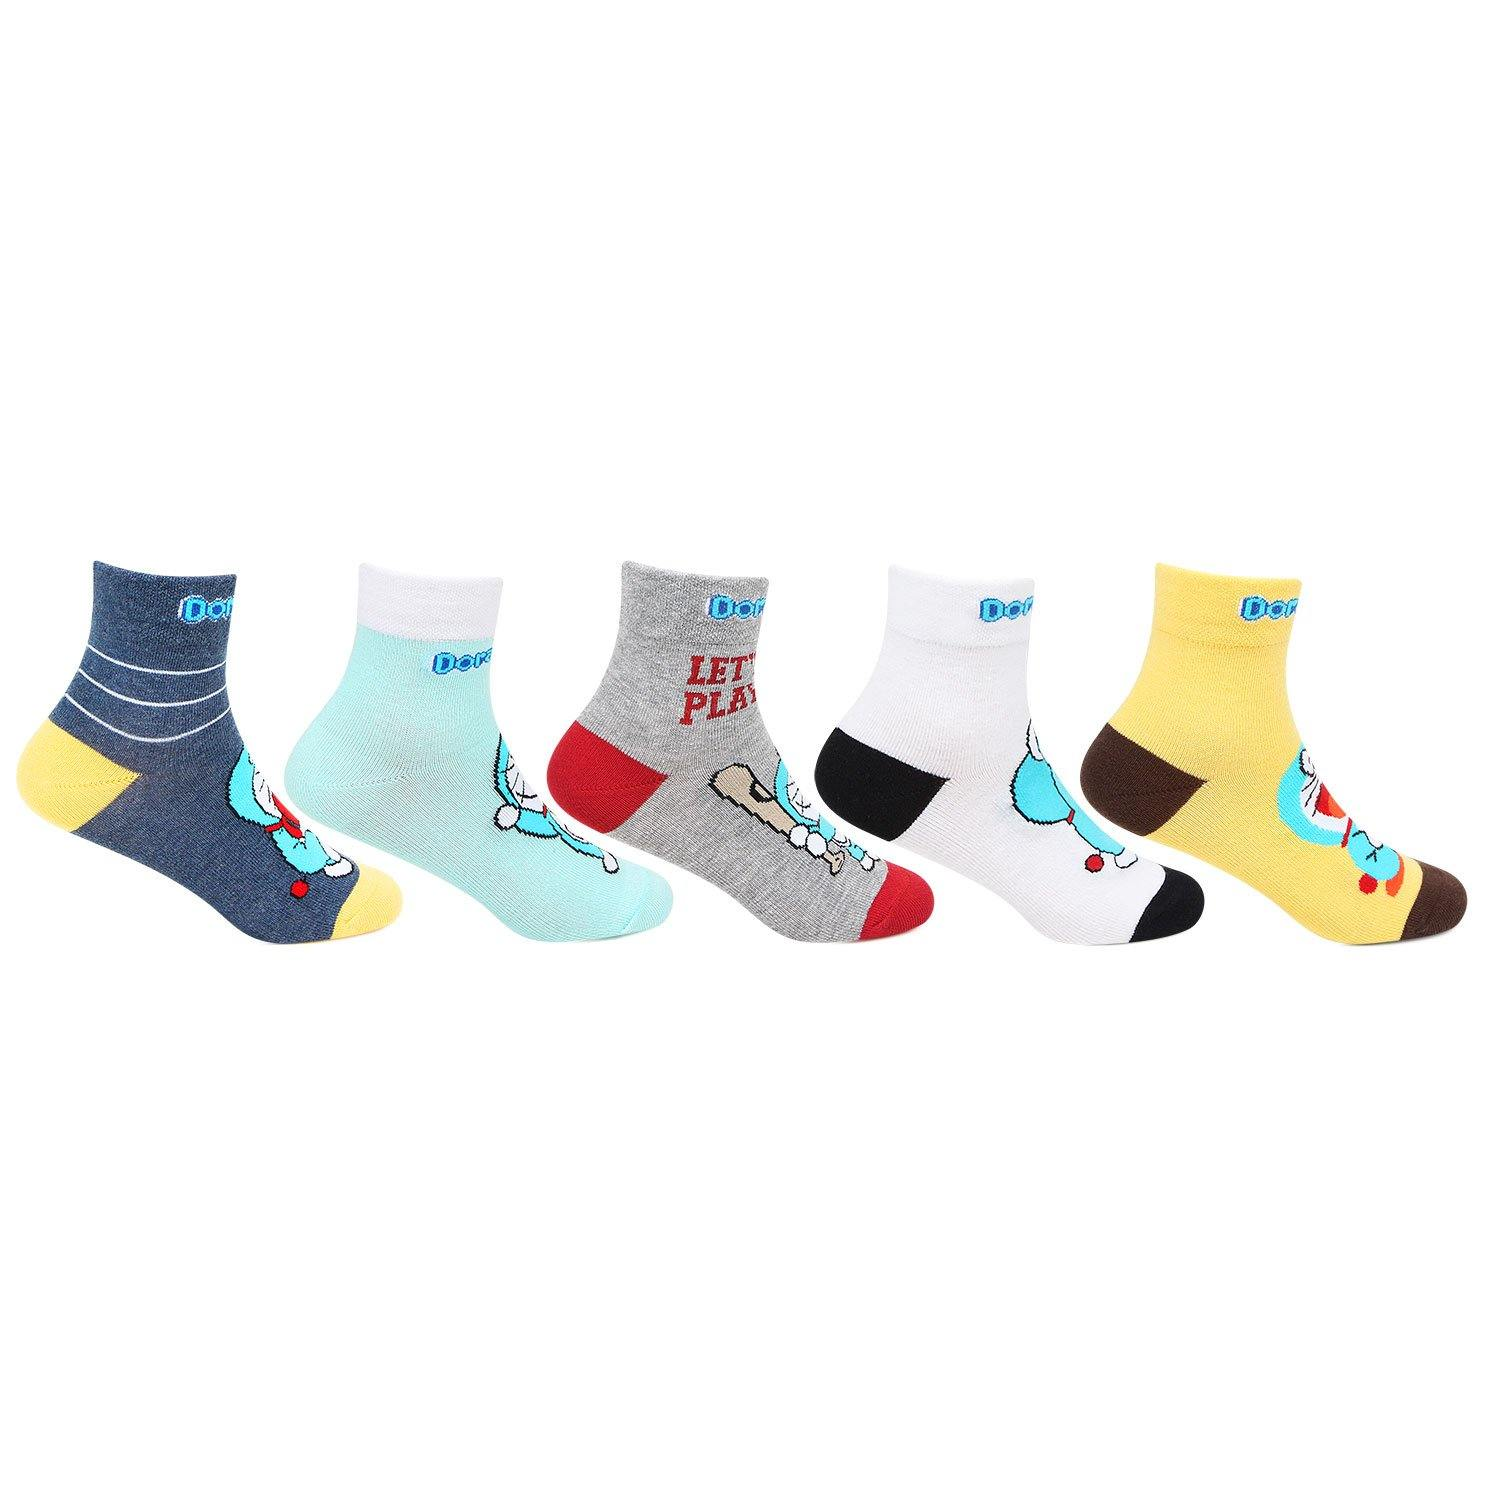 Doraemon Multicolored Socks For Kids  - Pack Of 5